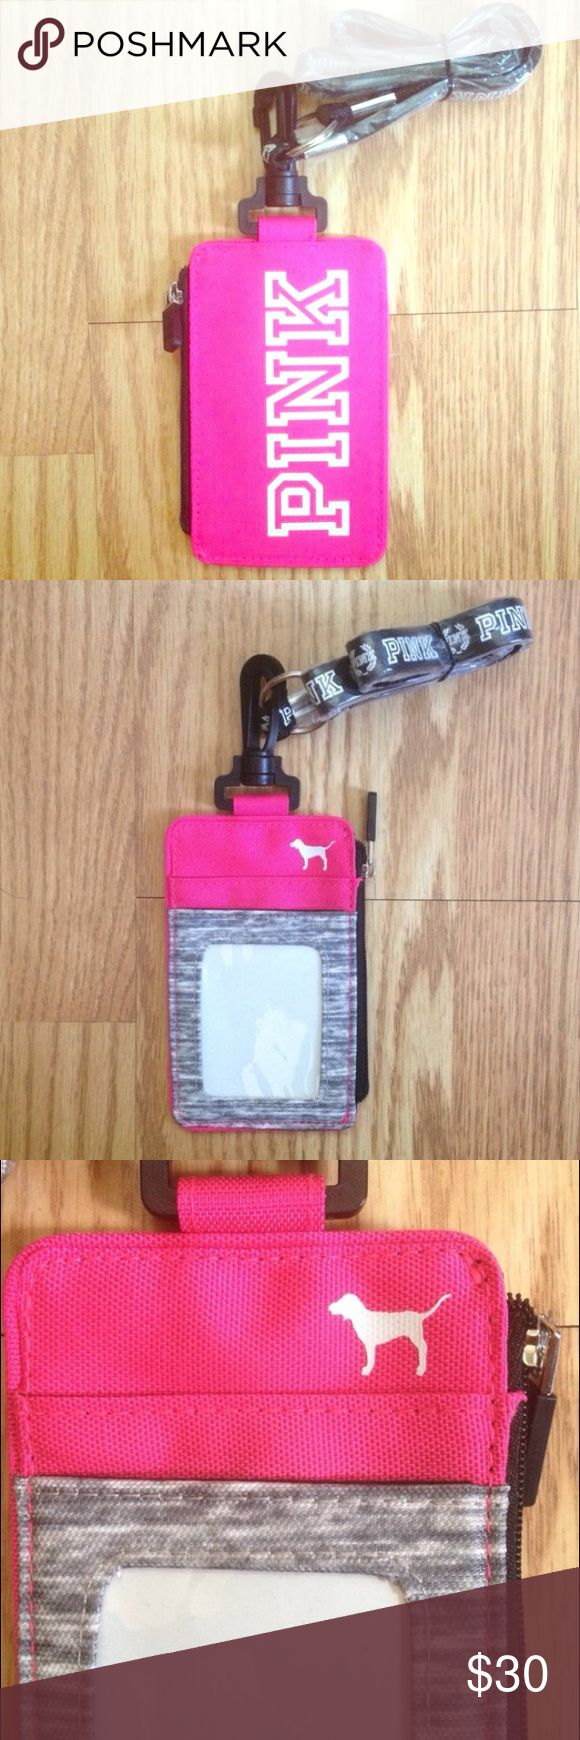 PINK Victoria's Secret Lanyard ID Holder Brand new in packaging. Outer pockets for ID's and cards. Zippered pocket for money and keys. Perfect for the dorm life! I ship same day or next day! PINK Victoria's Secret Accessories